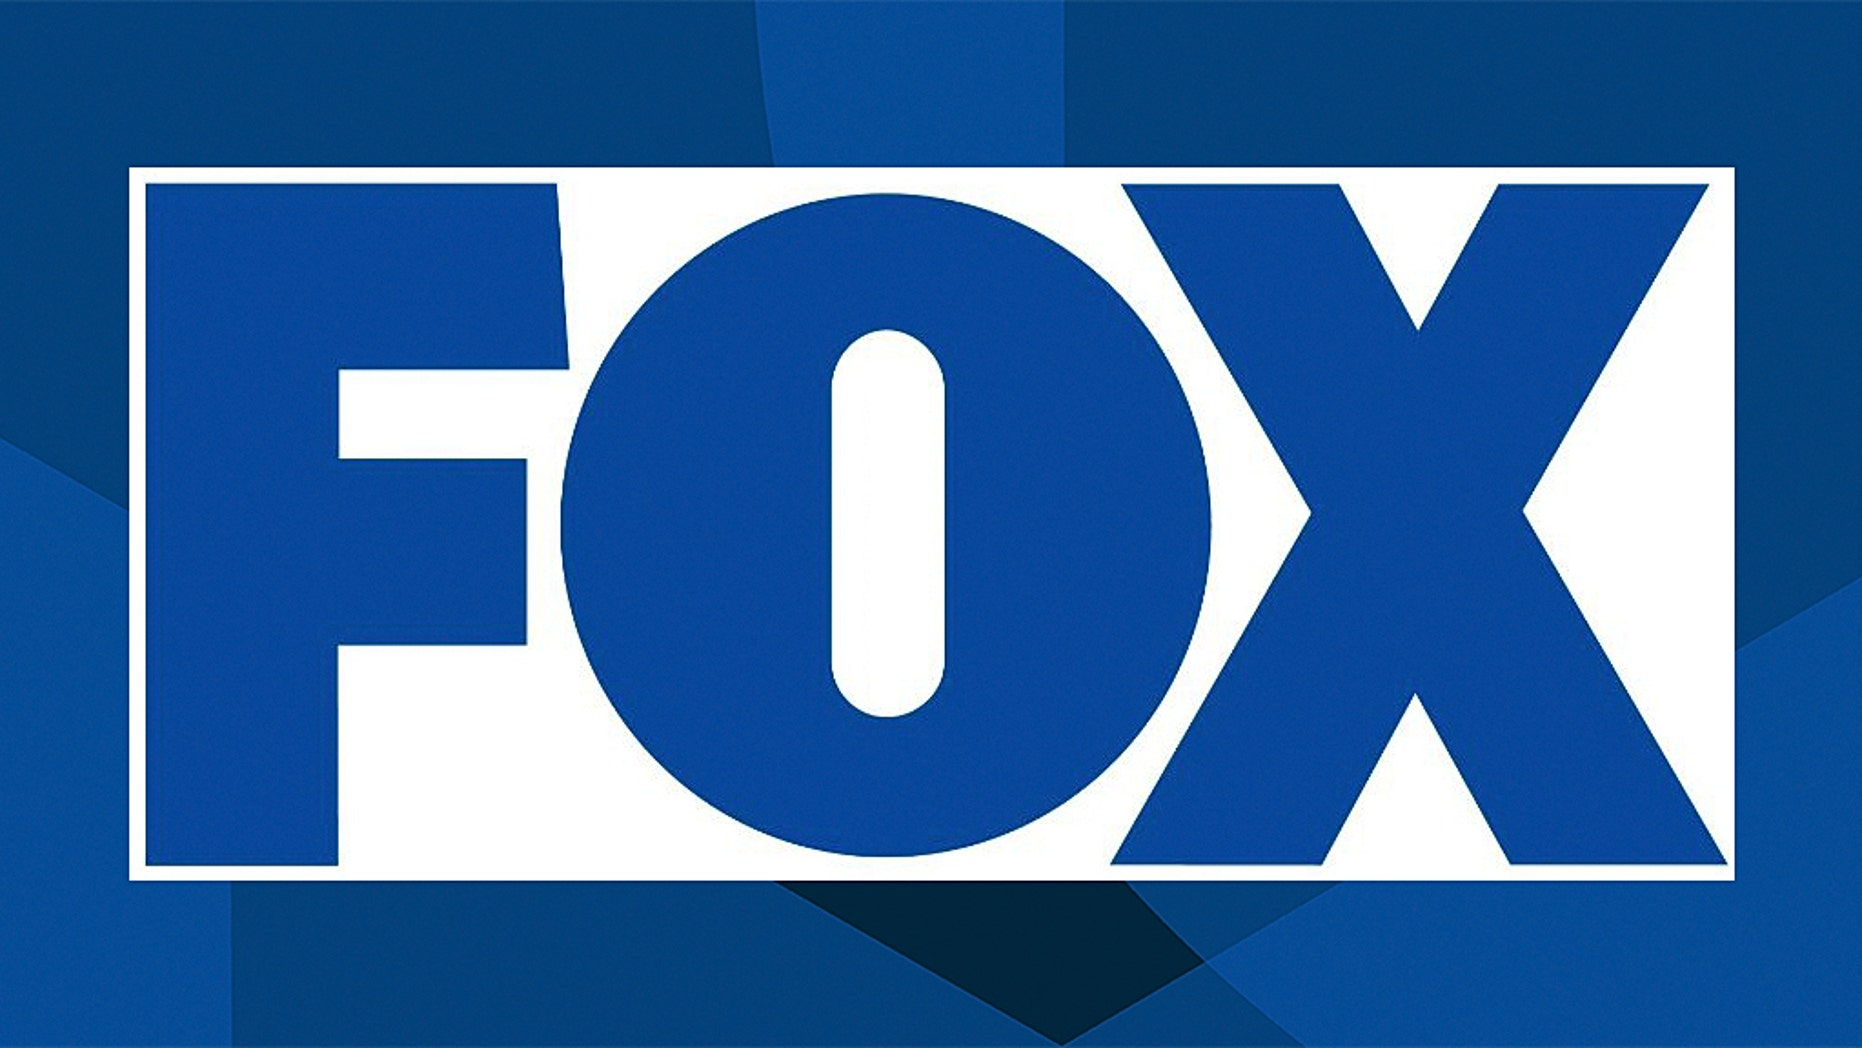 Fox Corporation Becomes Standalone Company as Disney Acquires 21st Century Fox